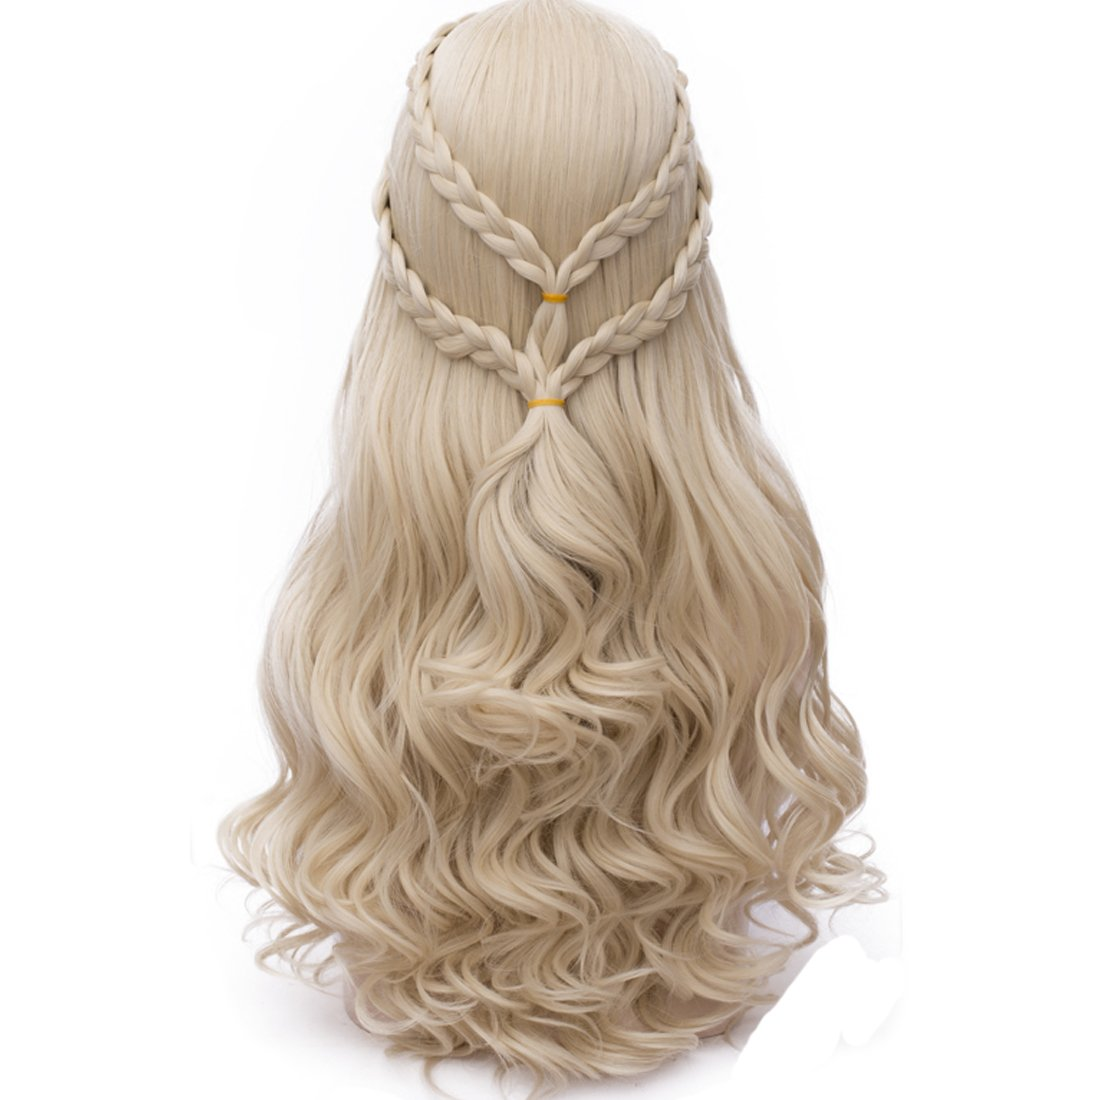 Probeauty 2017 New Long Braid Curly Women Cosplay Wigs +Wig Cap